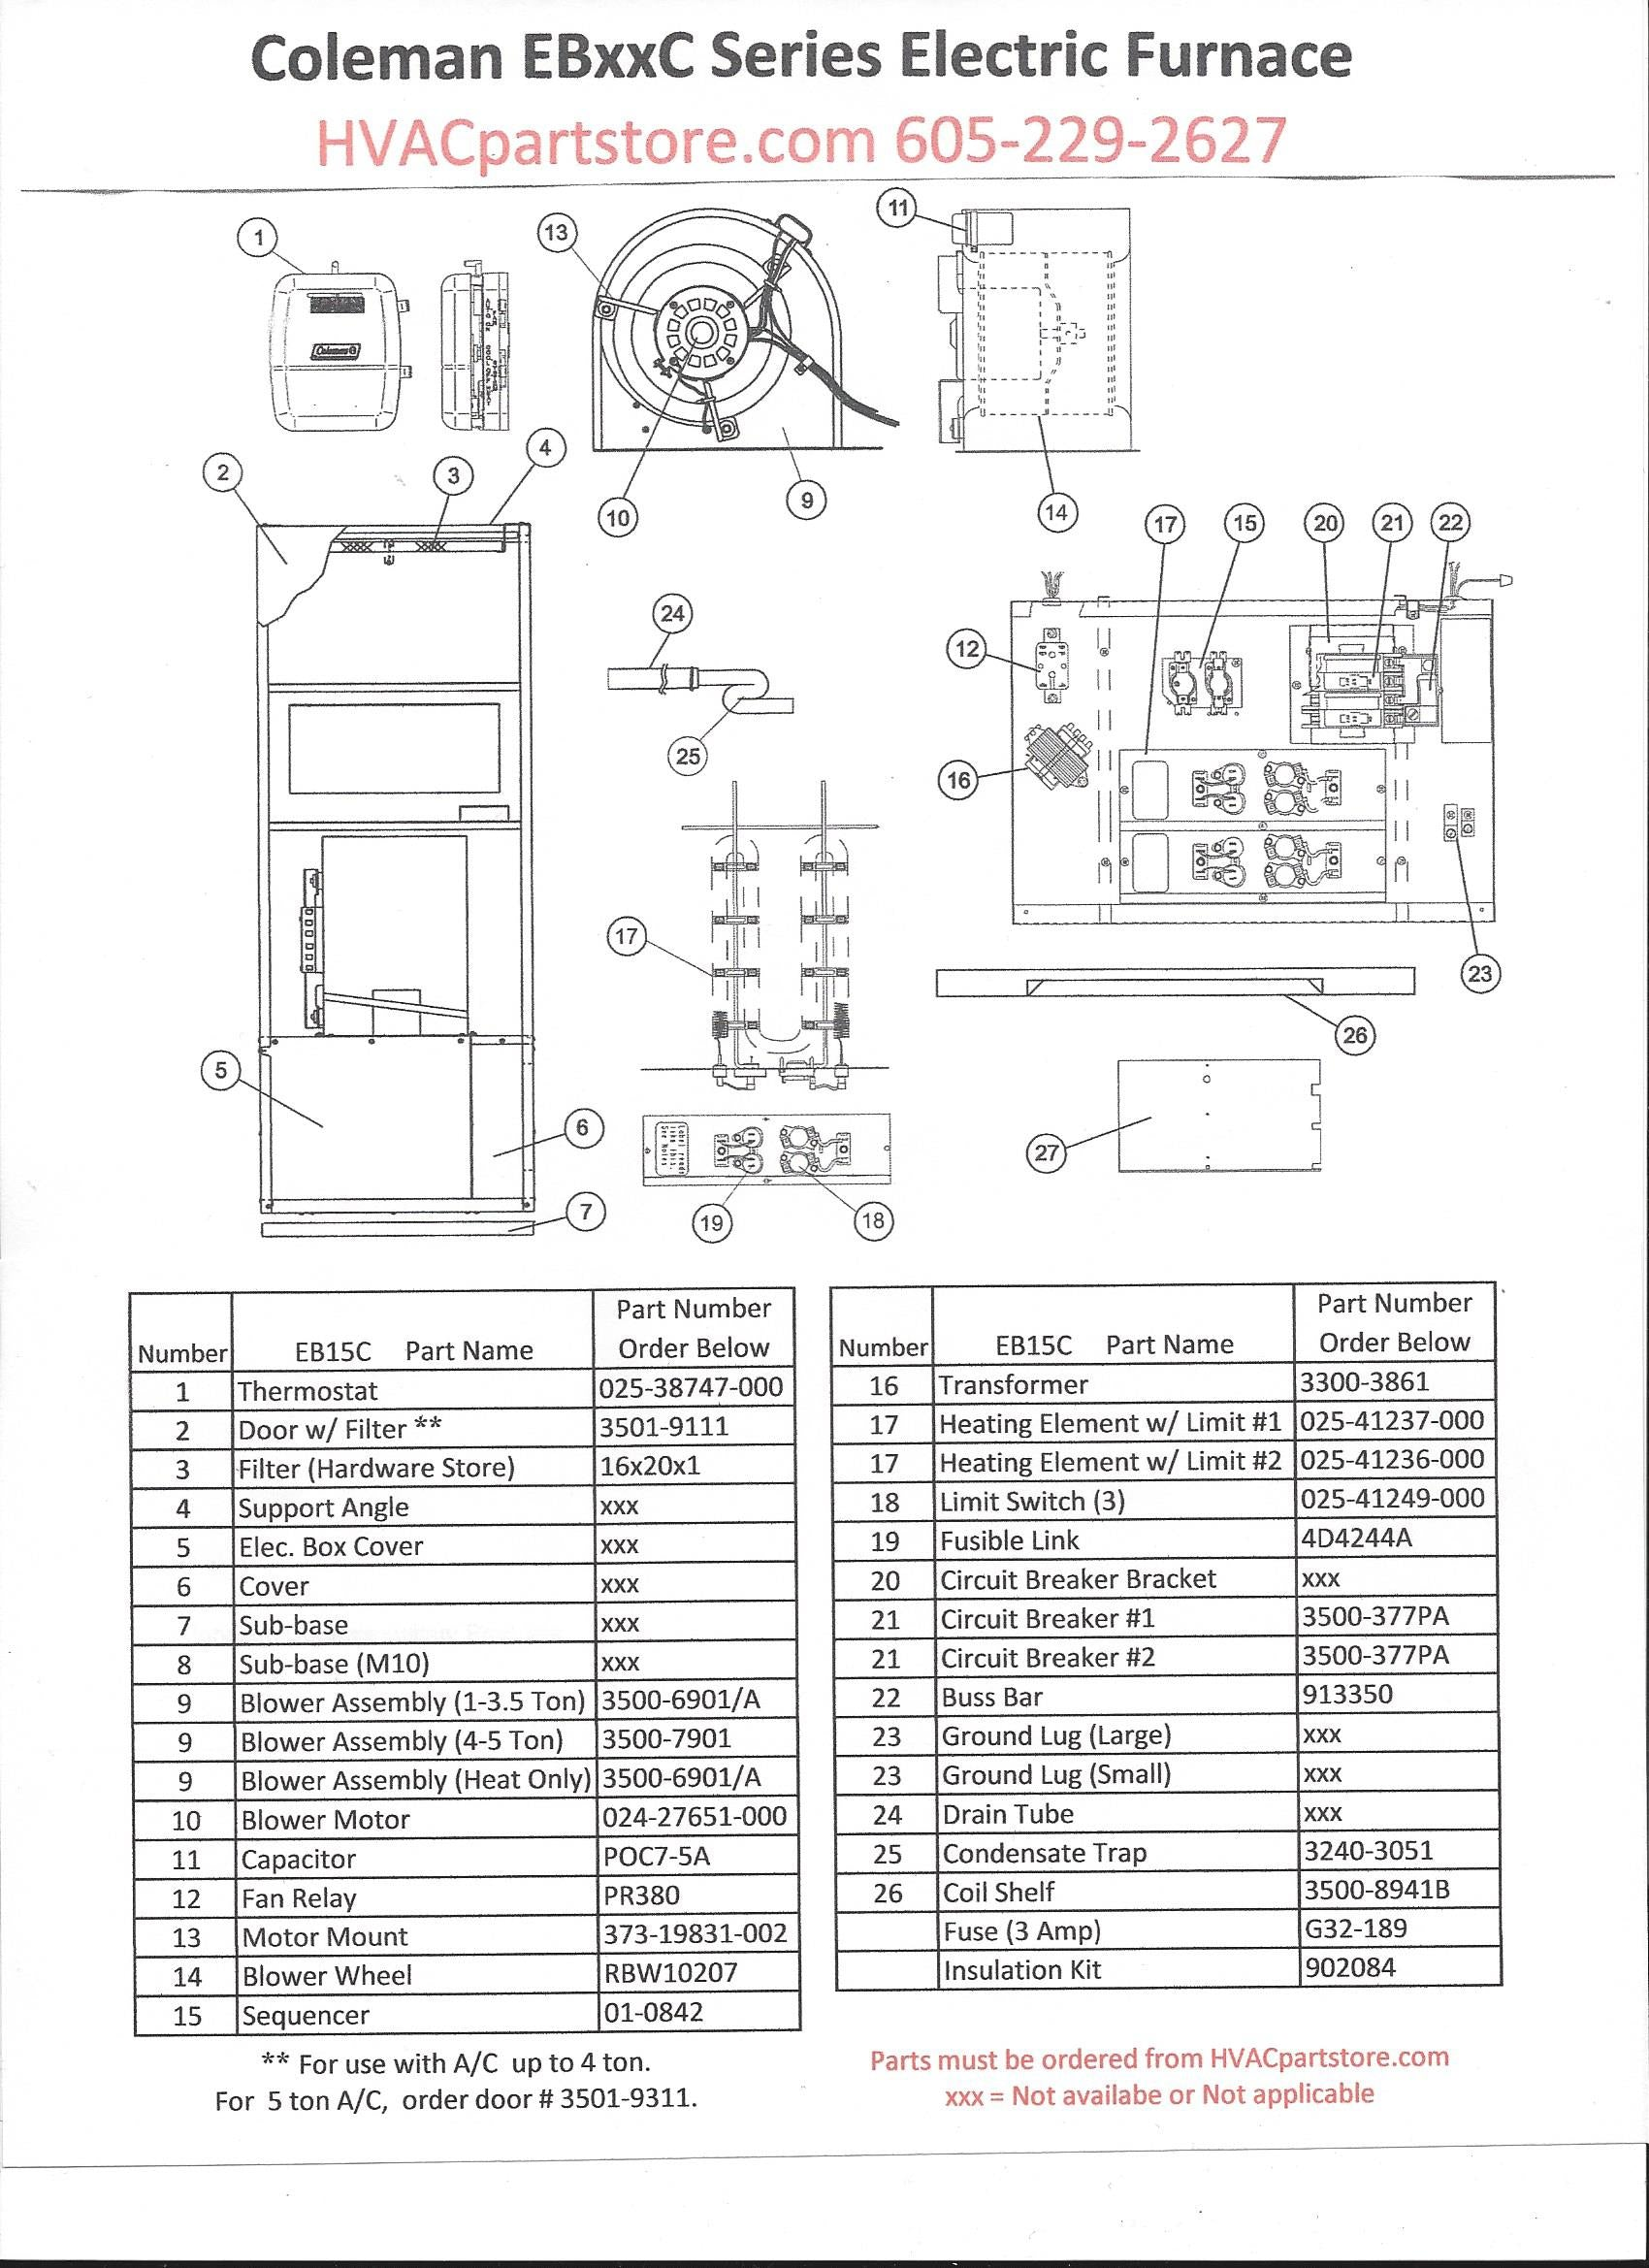 Coleman Wiring Schematics Diagram Library Hardy Furnace Parts Free Download Schematic Electric Diagrams